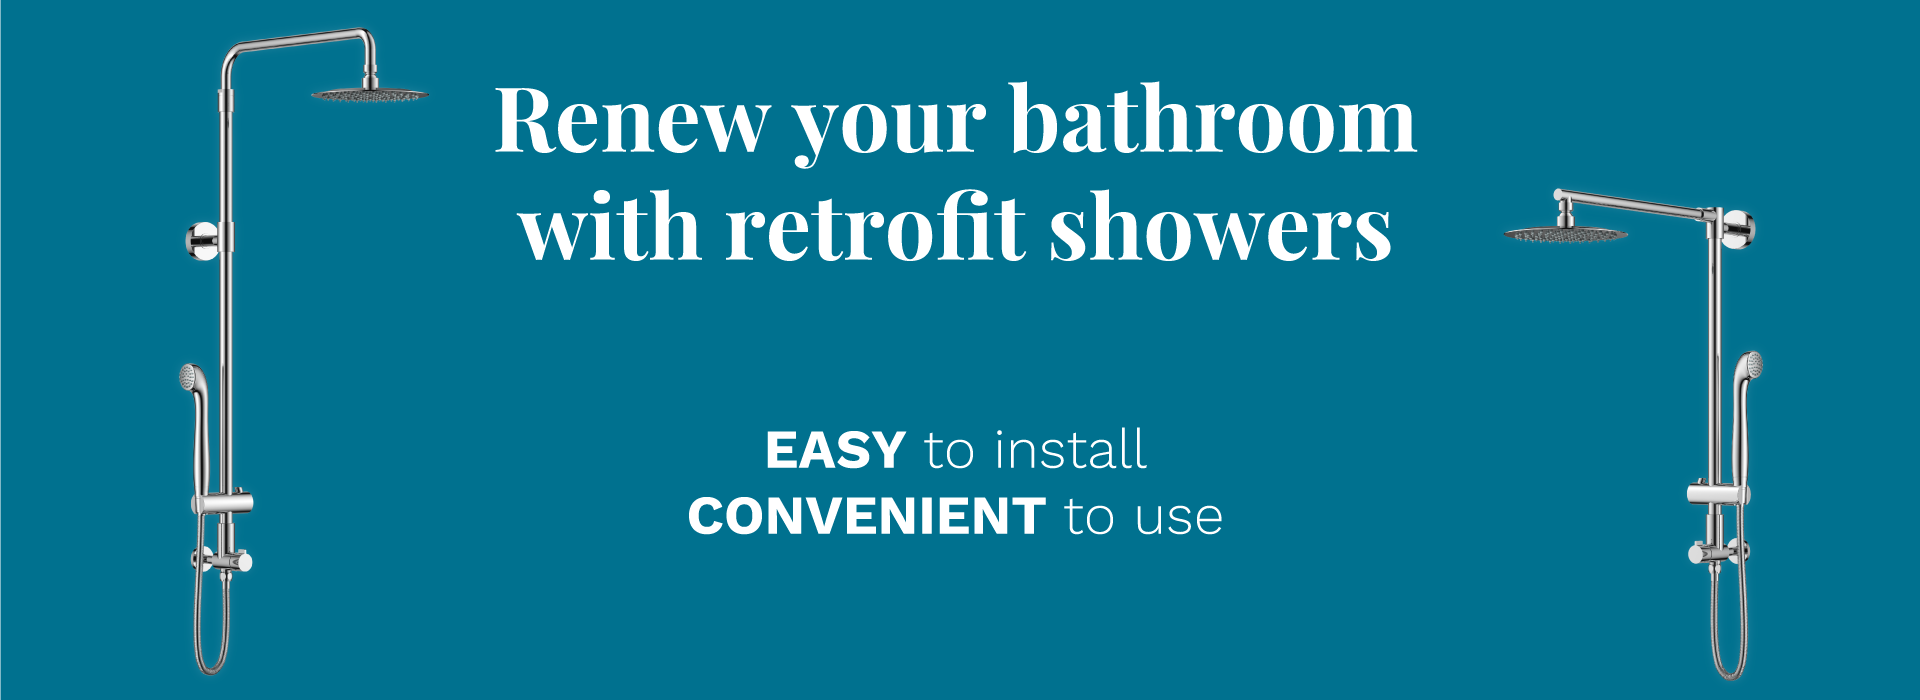 Renew your bathroom with retrofit showers. The shower is easy to install.